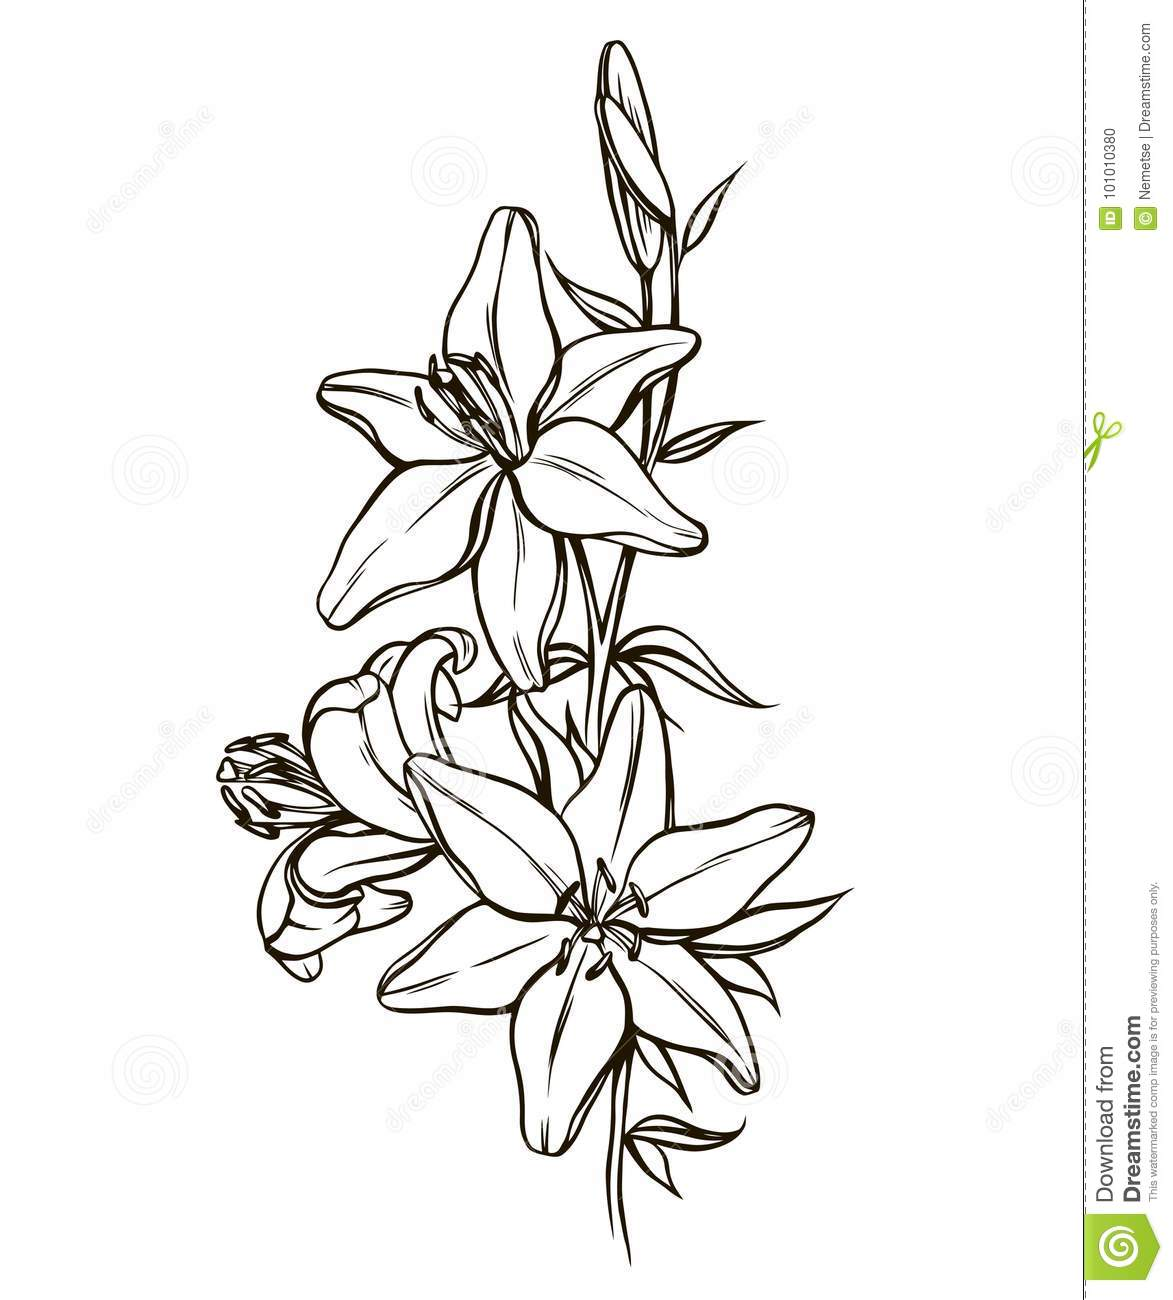 Illustration beautiful flower profile nature pictures www lily flowers black and white stock vector illustration of nature jpg 1173x1300 illustration beautiful flower profile izmirmasajfo